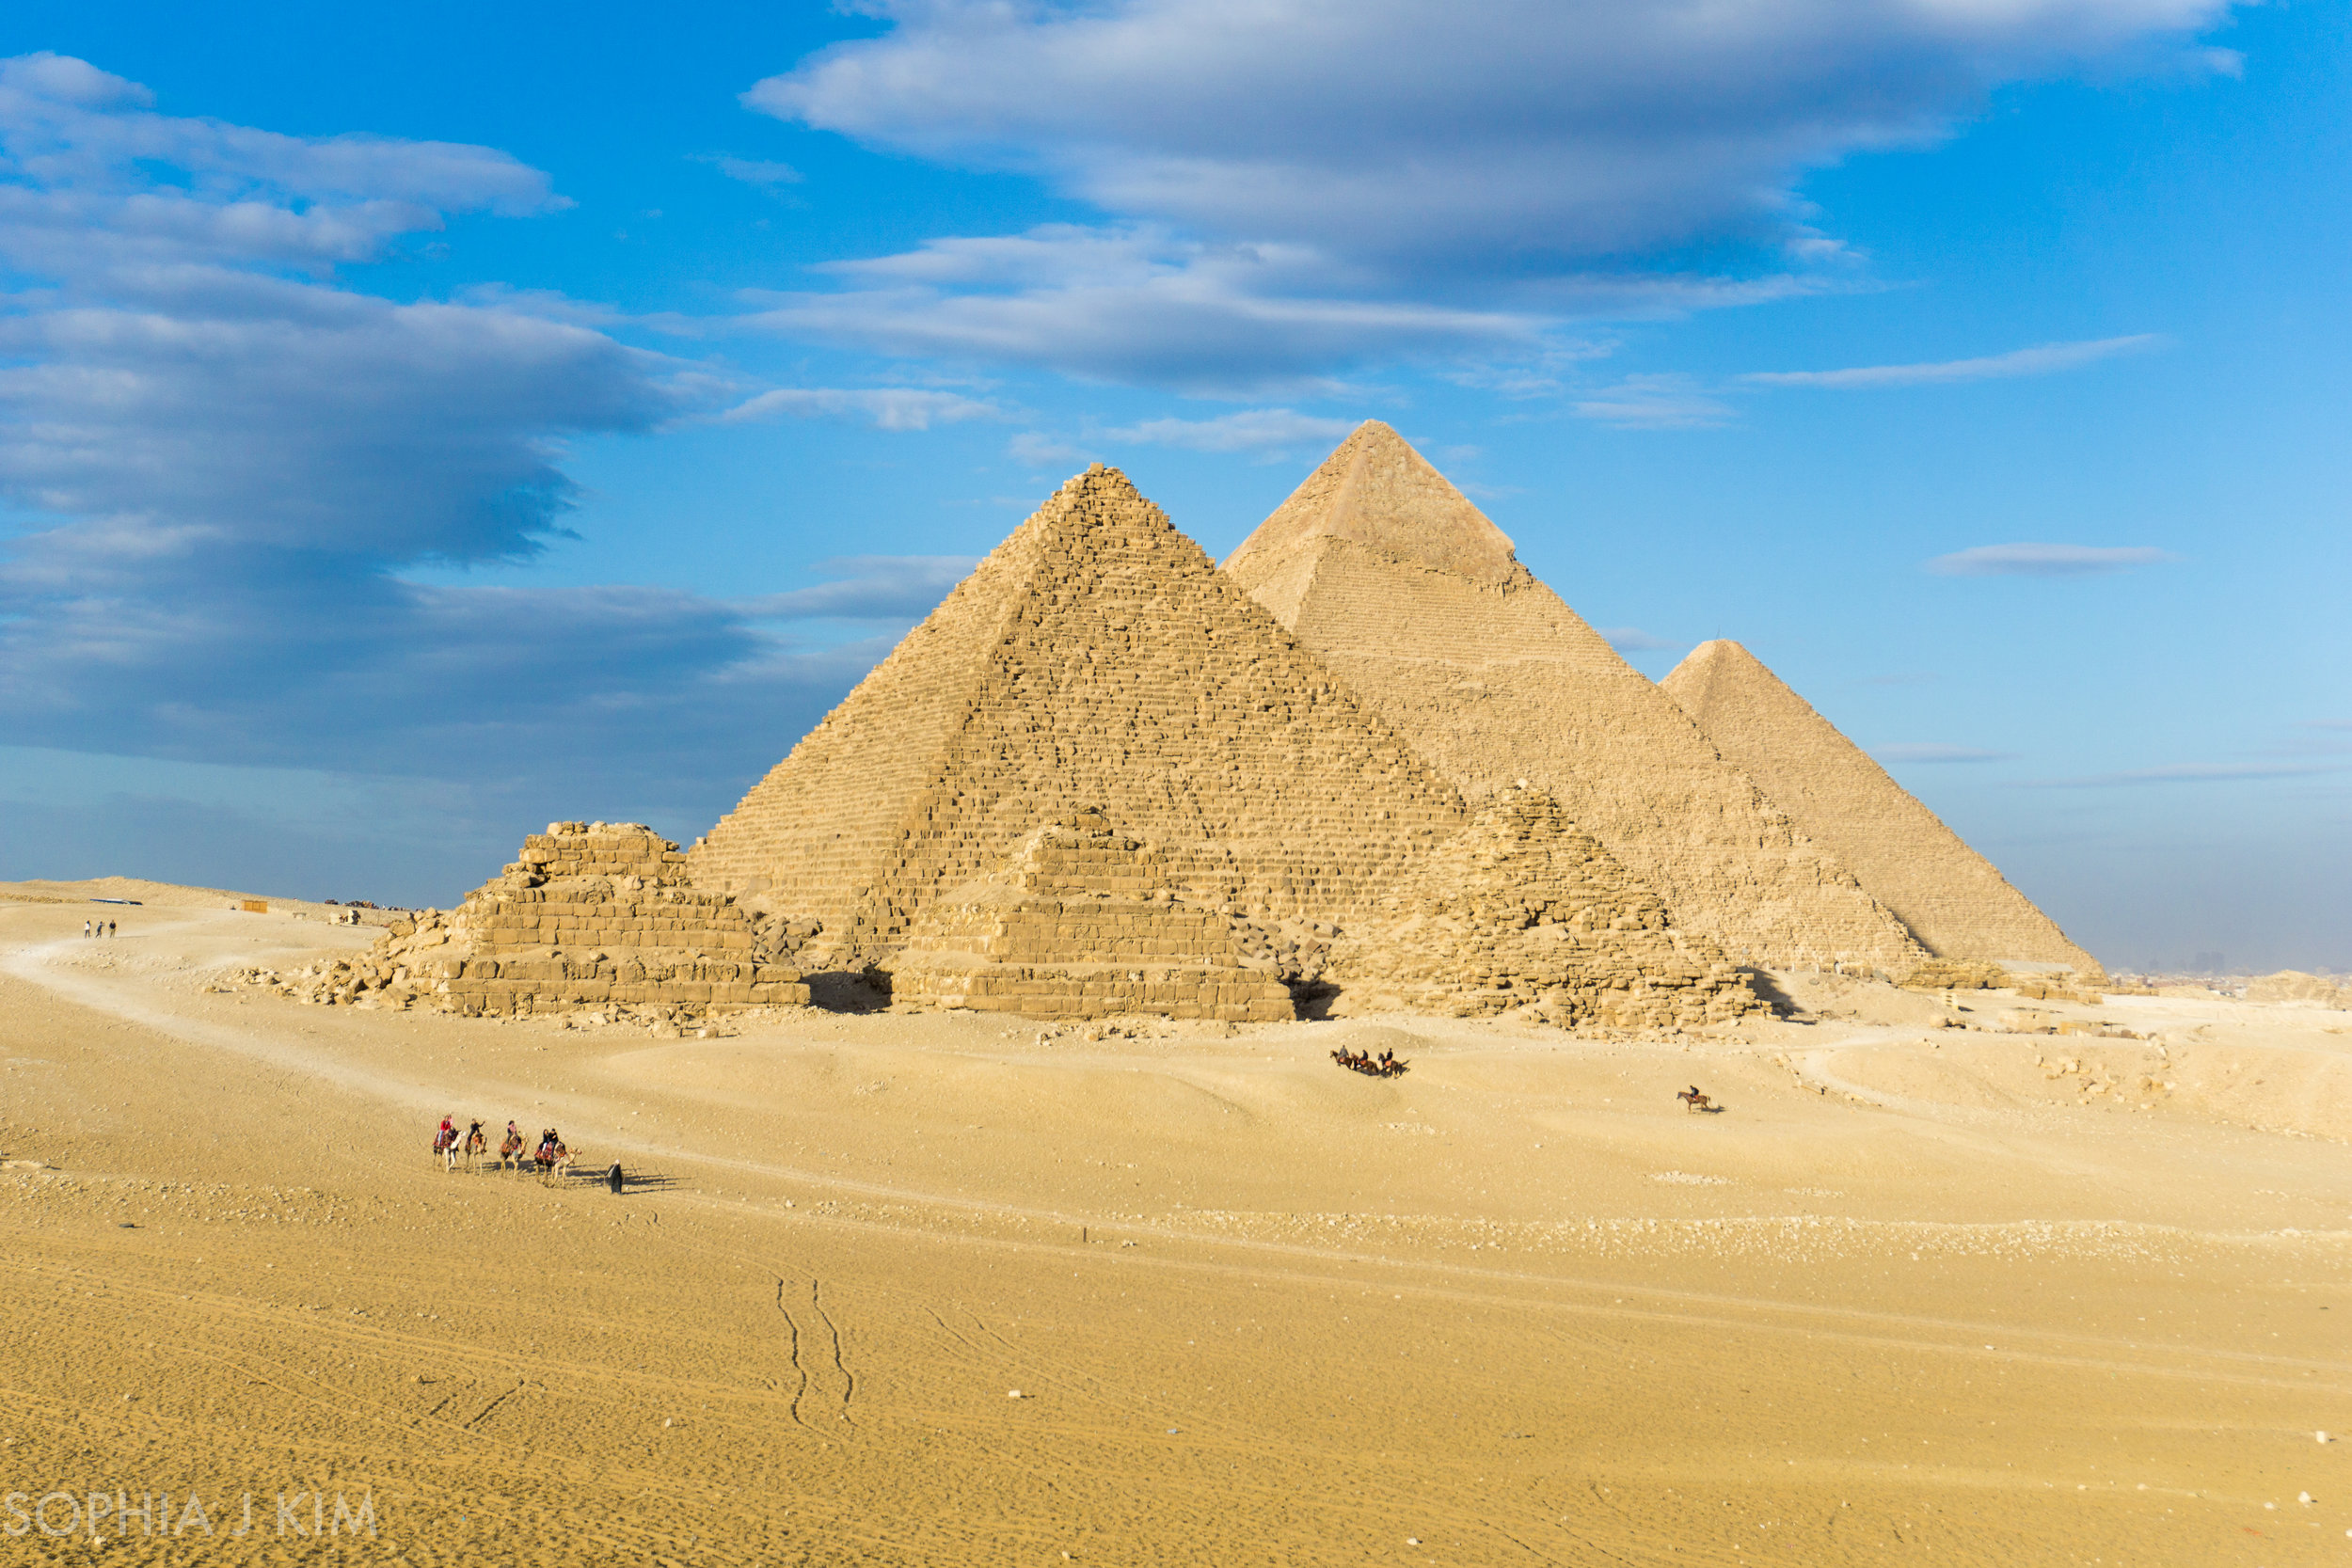 Viewpoint - Great Pyramids of Giza